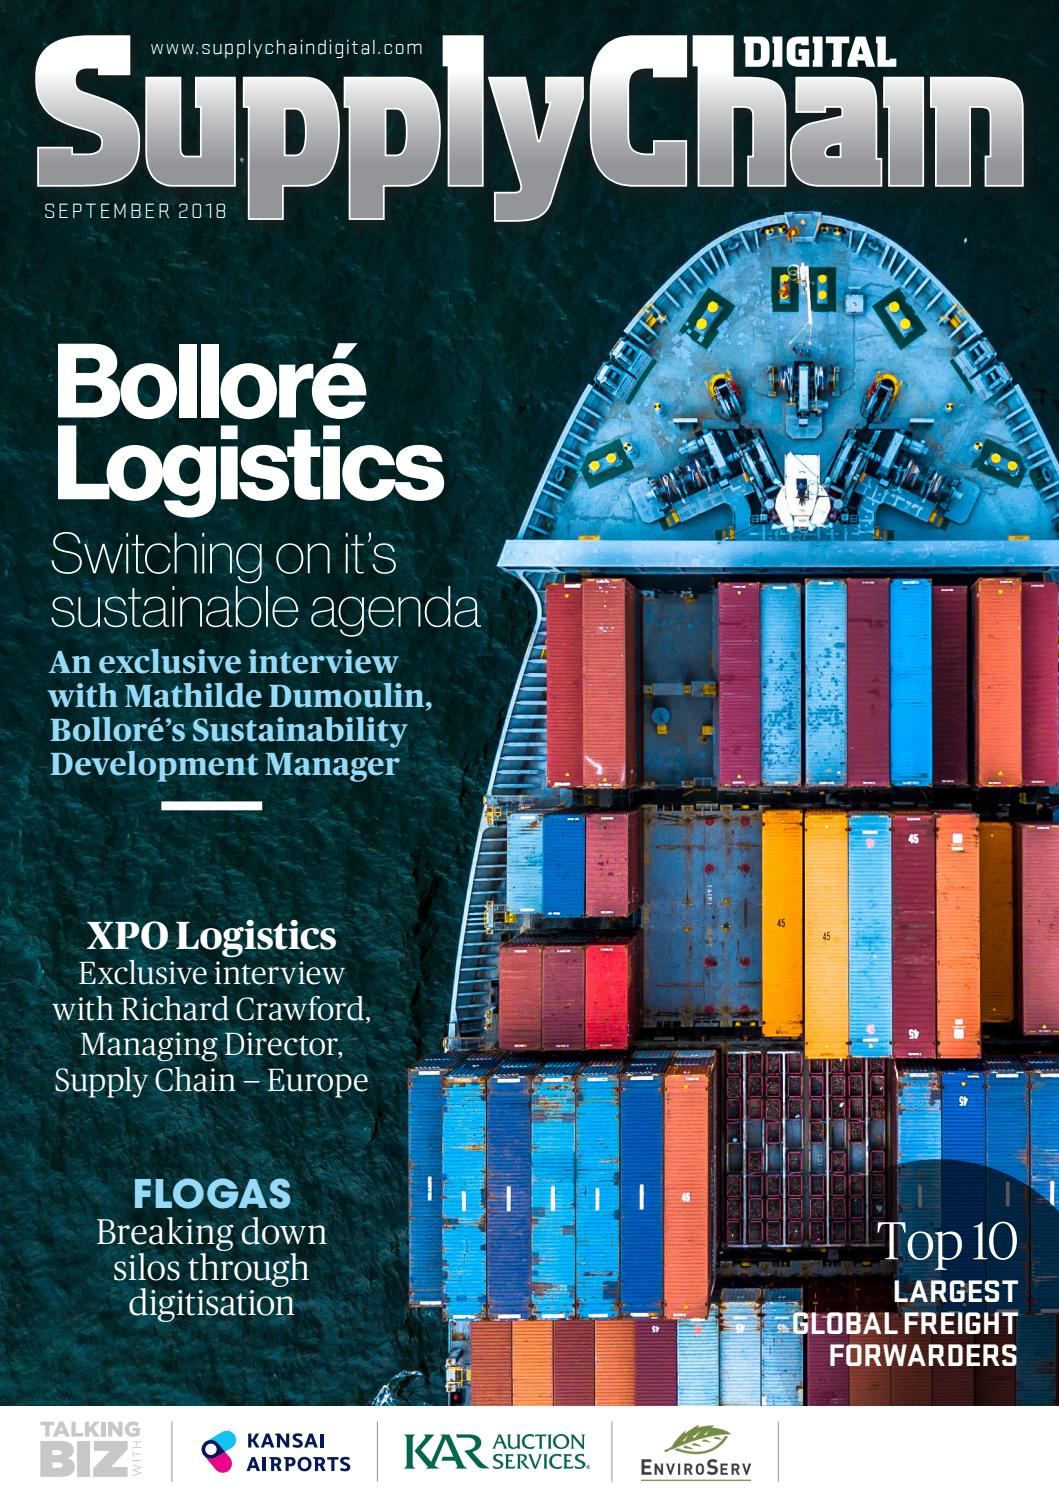 Supply Chain Digital Magazine September 2018 By Nothing Found For Picpxpo Homebreakerboxdiagram Issuu